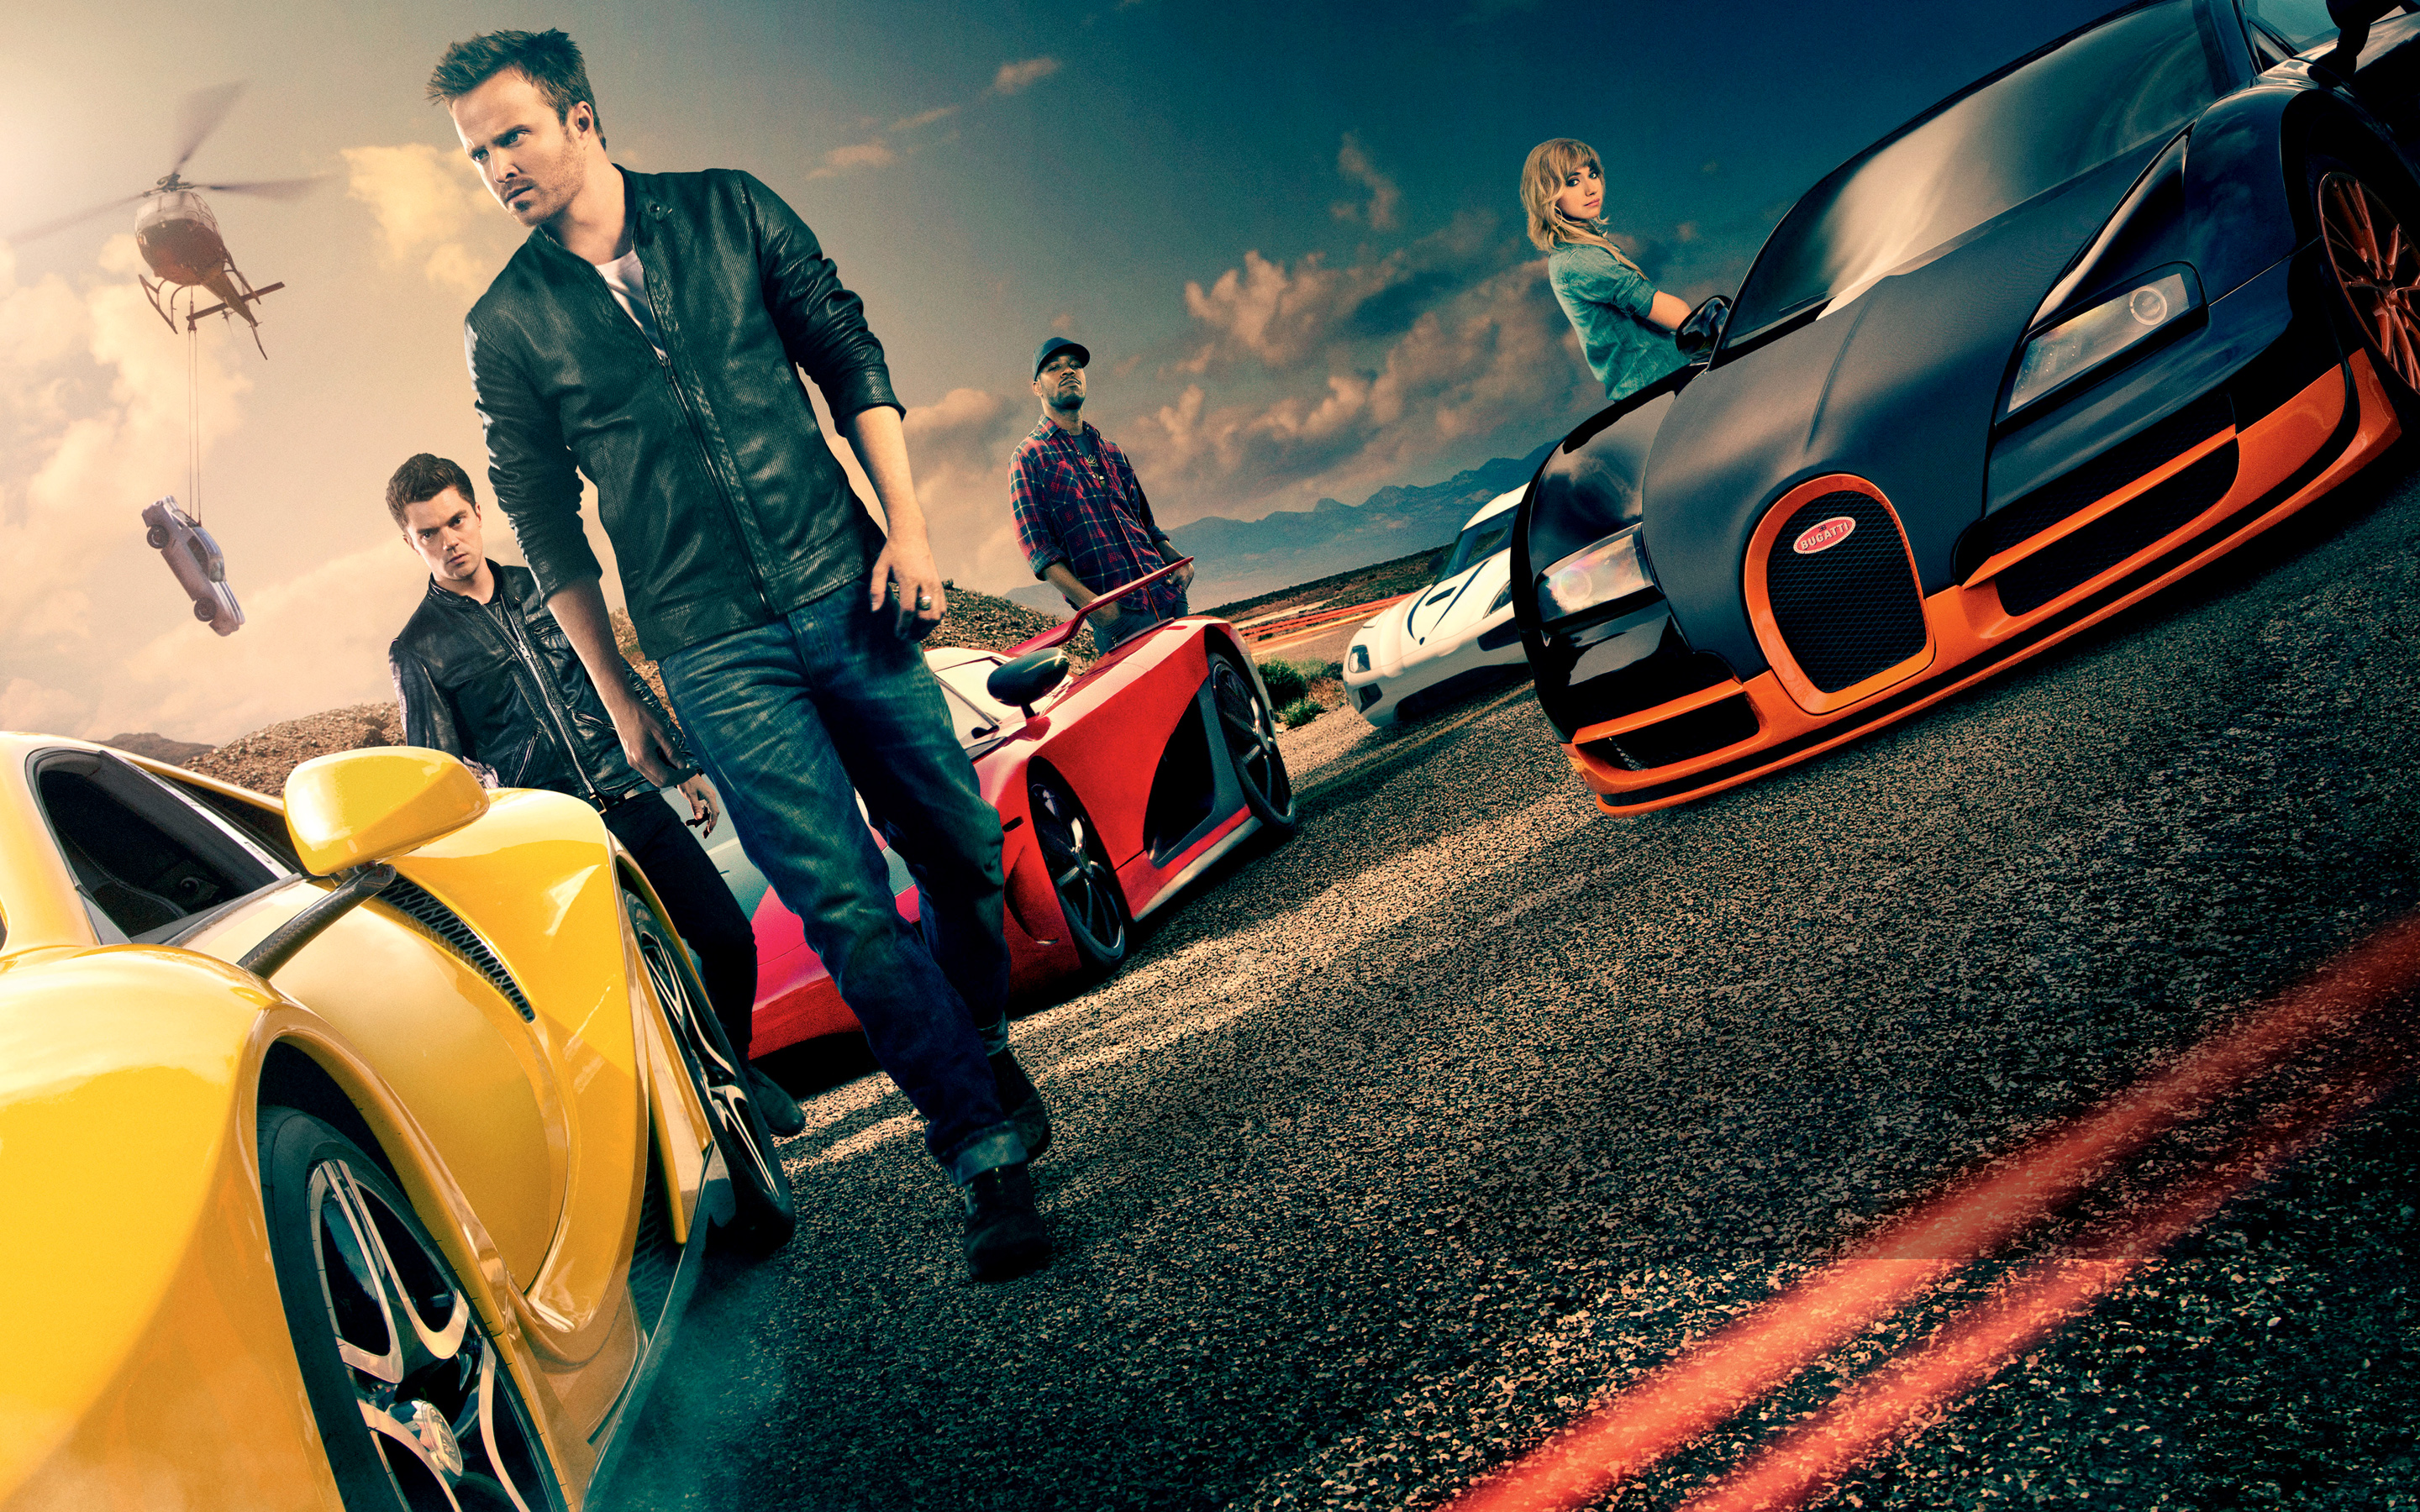 Need for Speed 2014 Movie